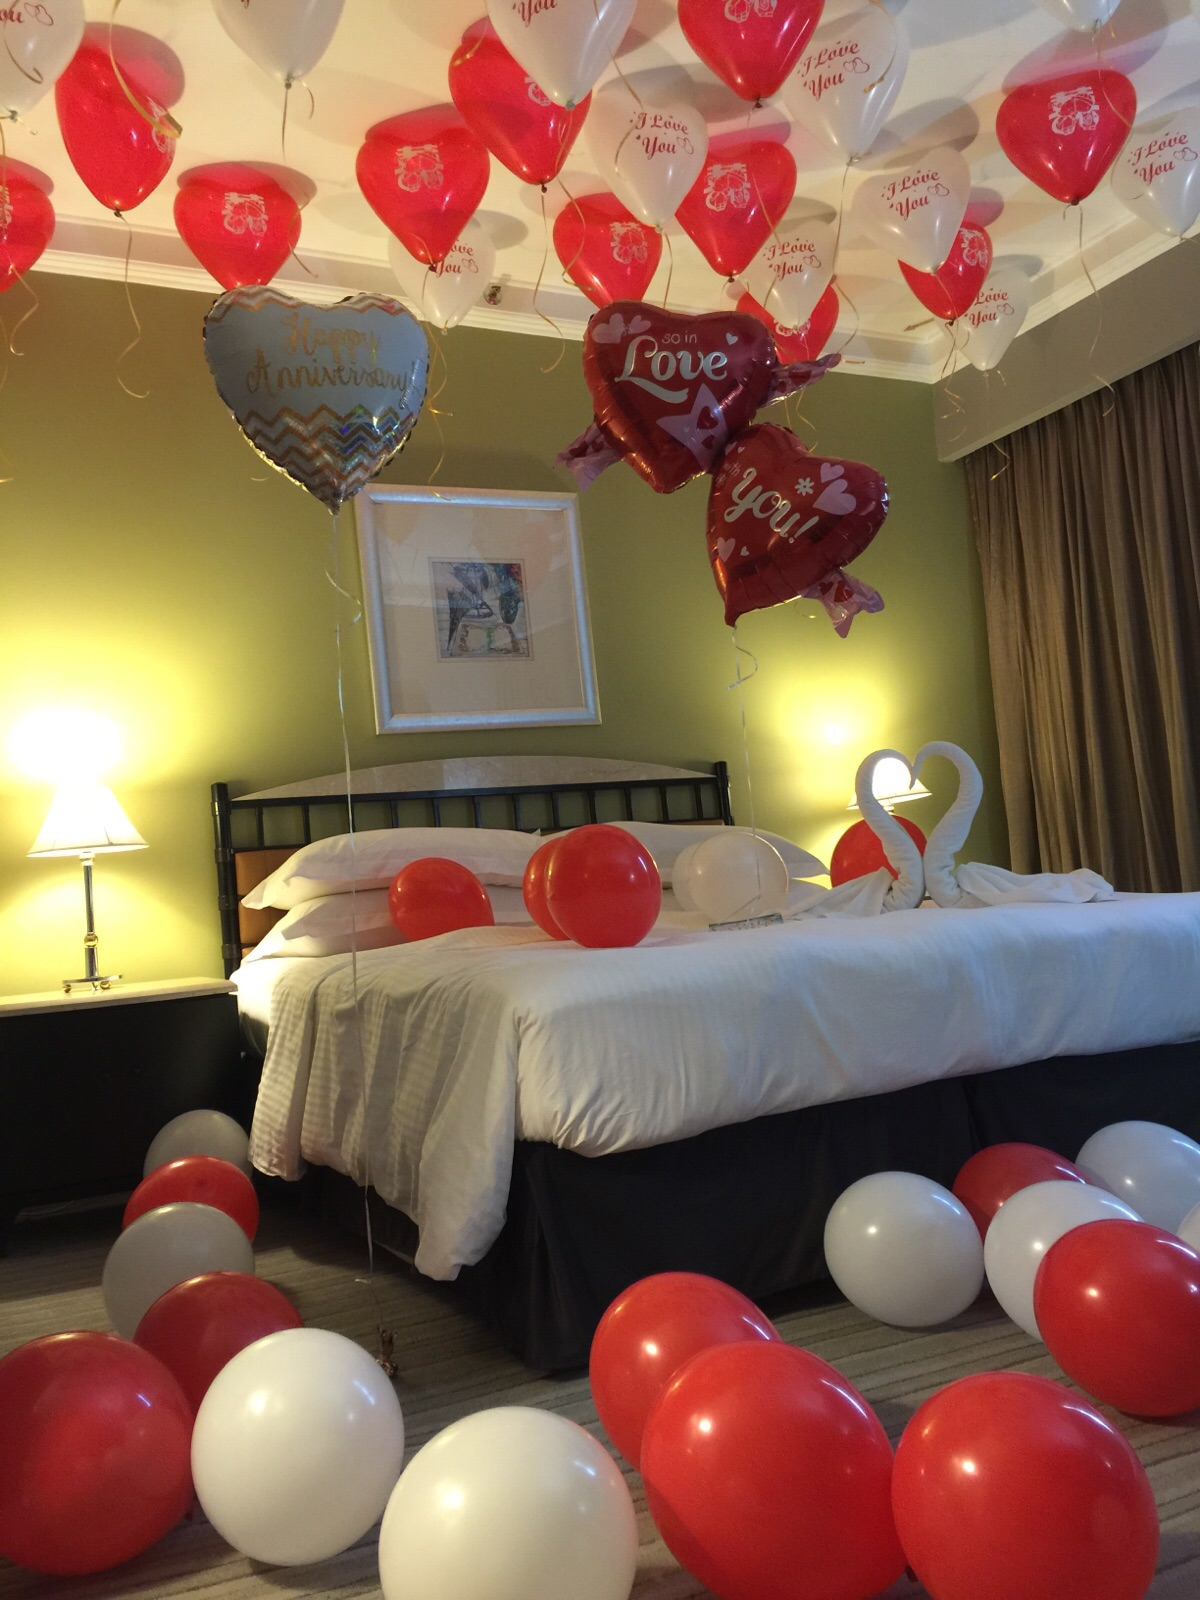 32 Beauty Room Decoration With Balloons For